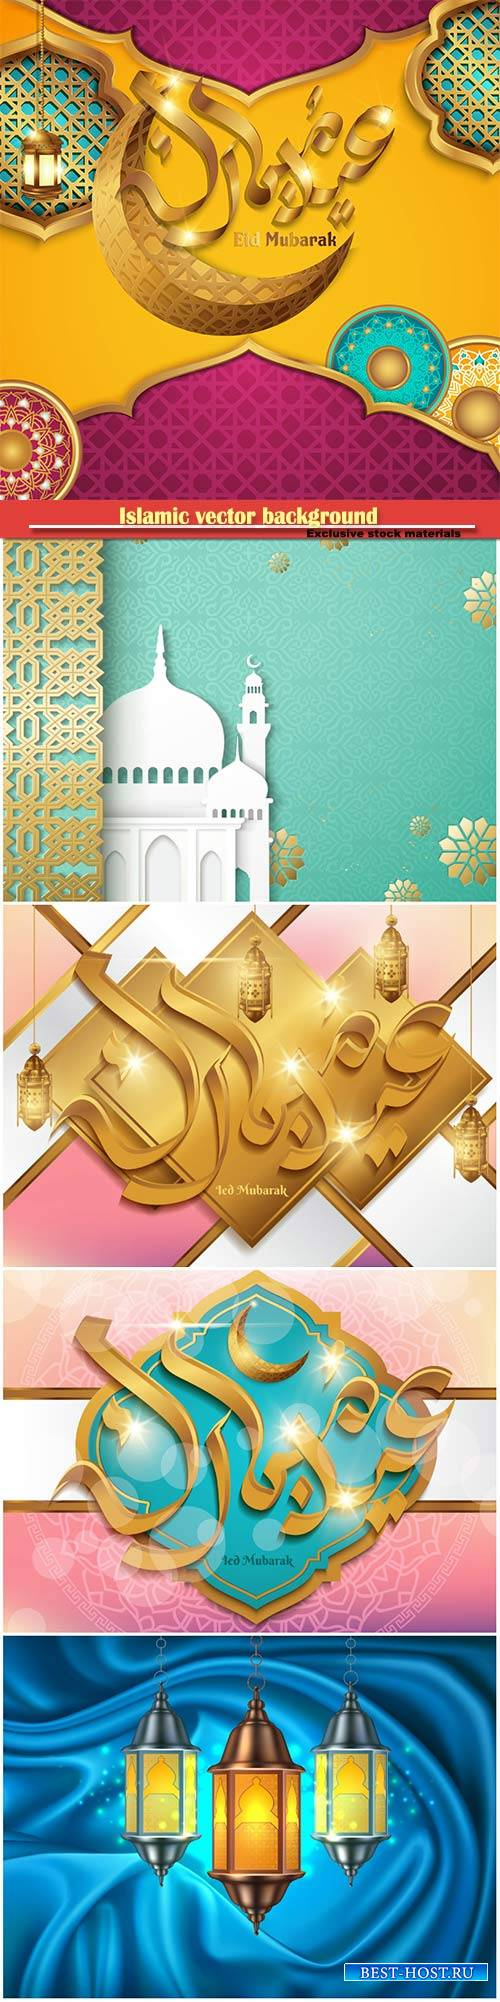 Islamic vector background with text Ramadan Kareem, Eid Mubarak calligraphy